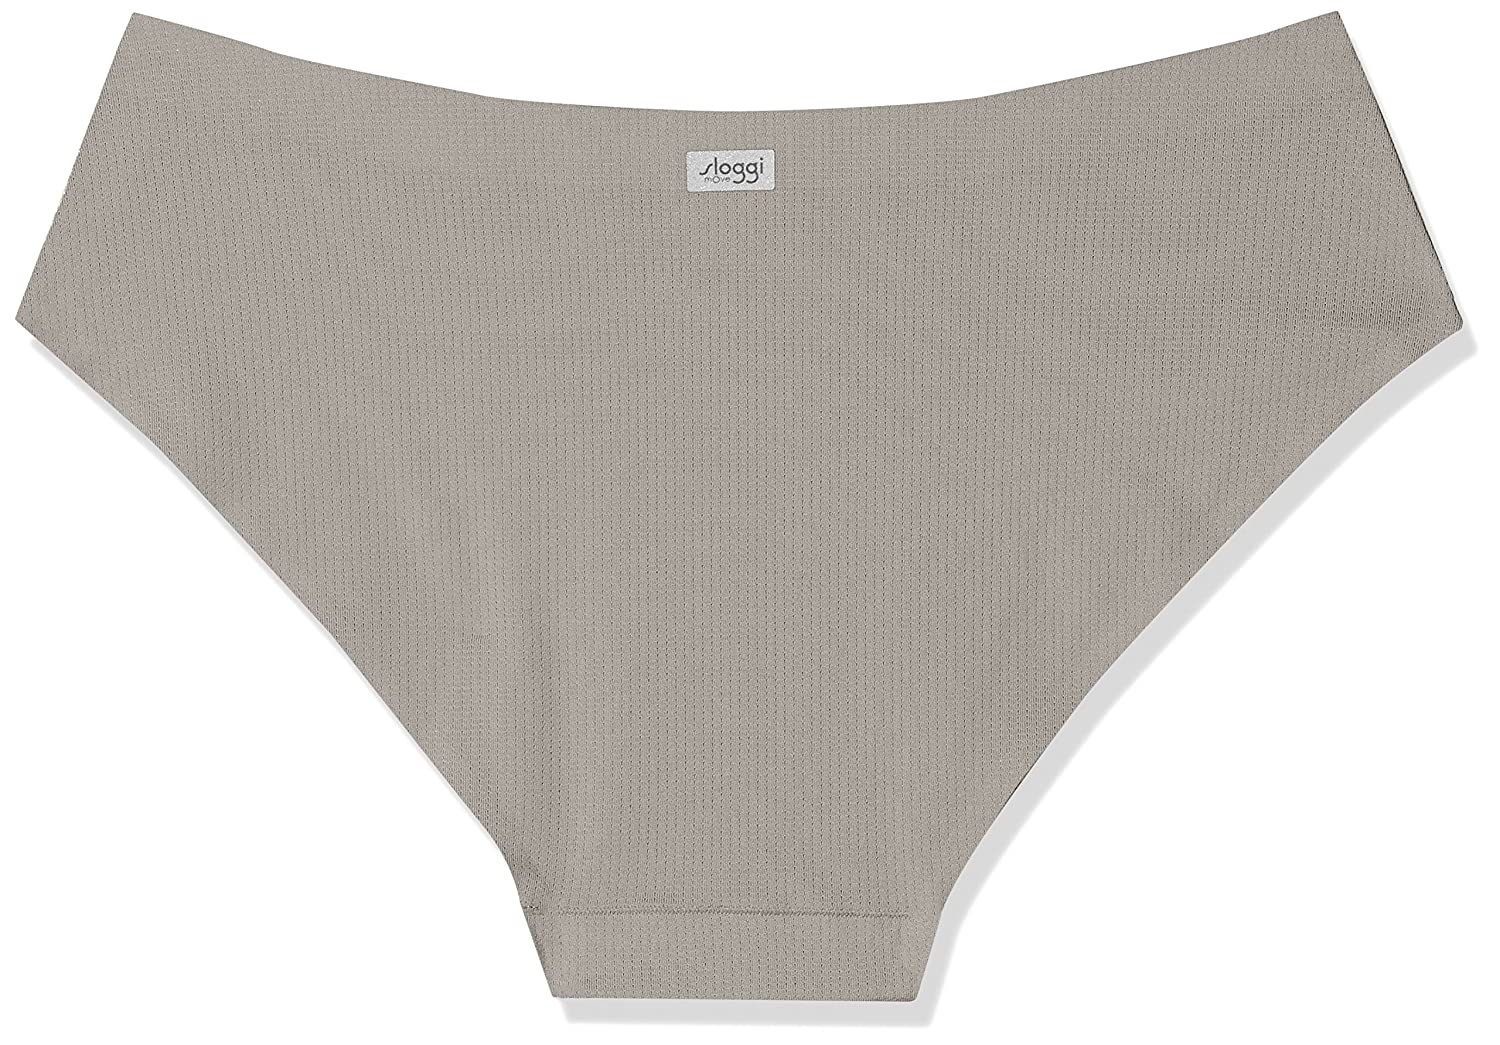 acec8a2452e7 Amazon.com: Sloggi Womens 10190350 Move Hipster Sports Briefs Pack of 2:  Clothing